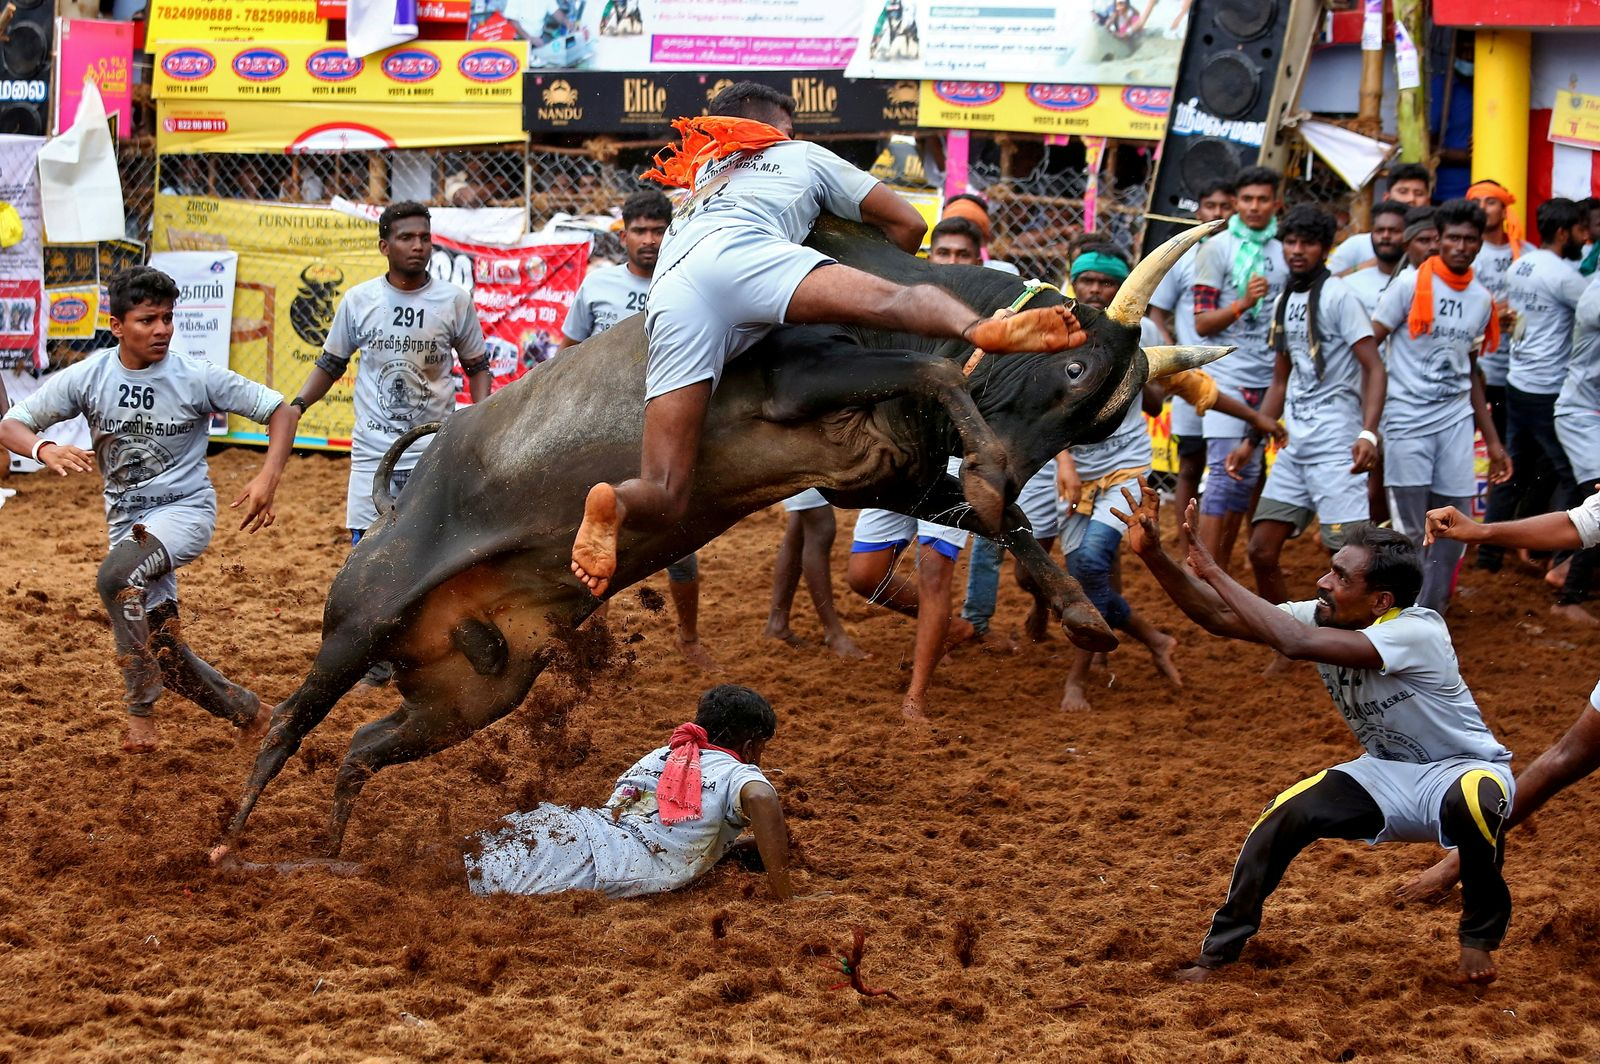 Villagers try to control a bull during a bull-taming festival, known as Jallikattu, on the outskirts of Madurai town